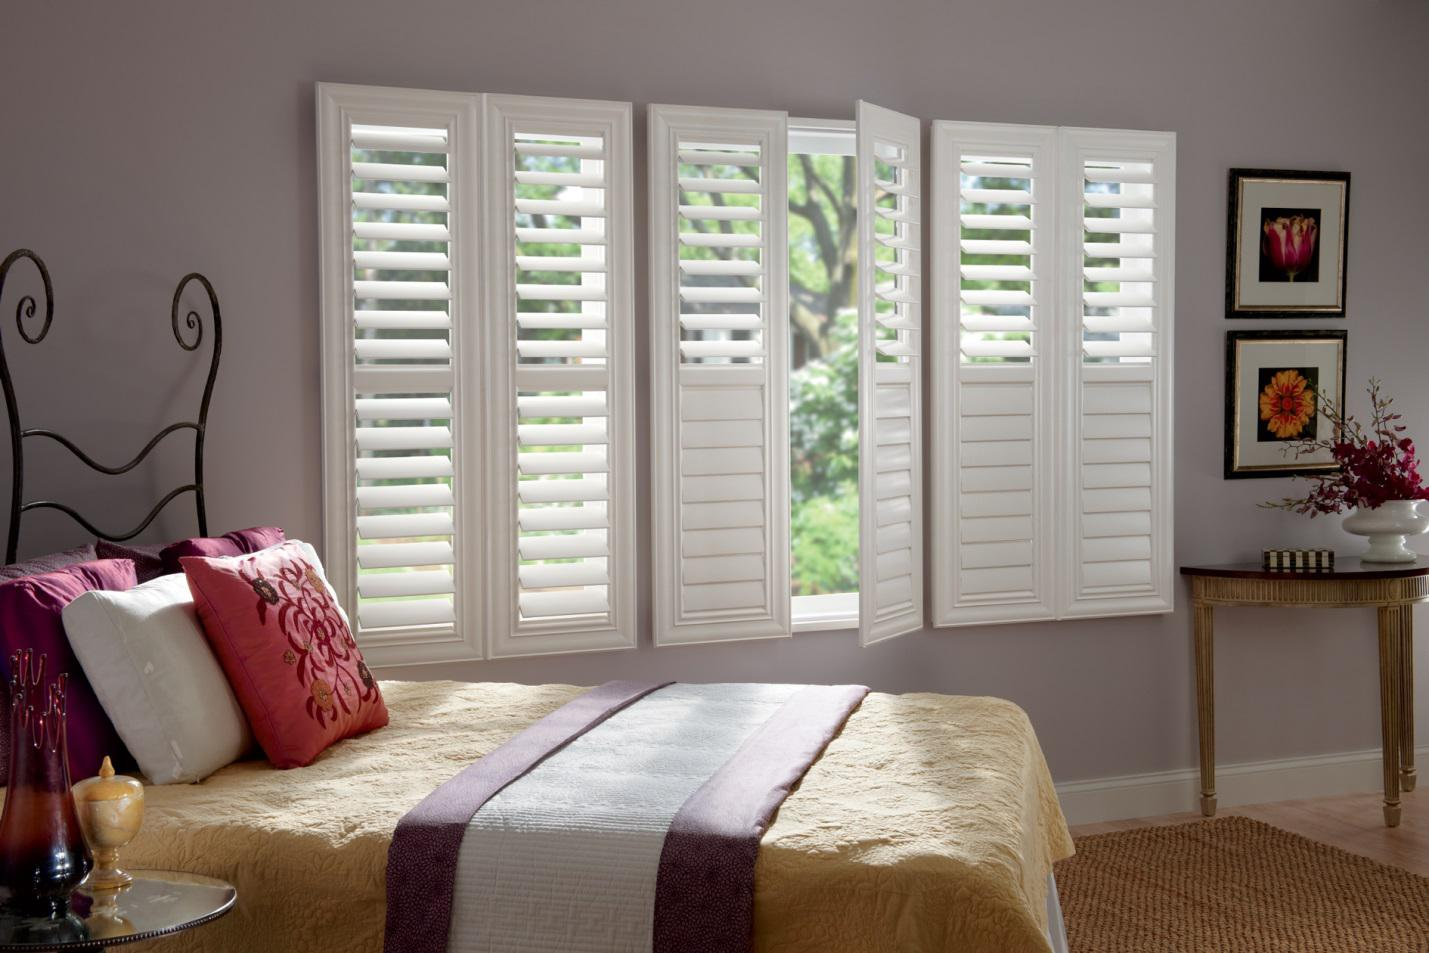 Enhance The Appeal Of Your Home With Plantation Shutters Interior Design Explained